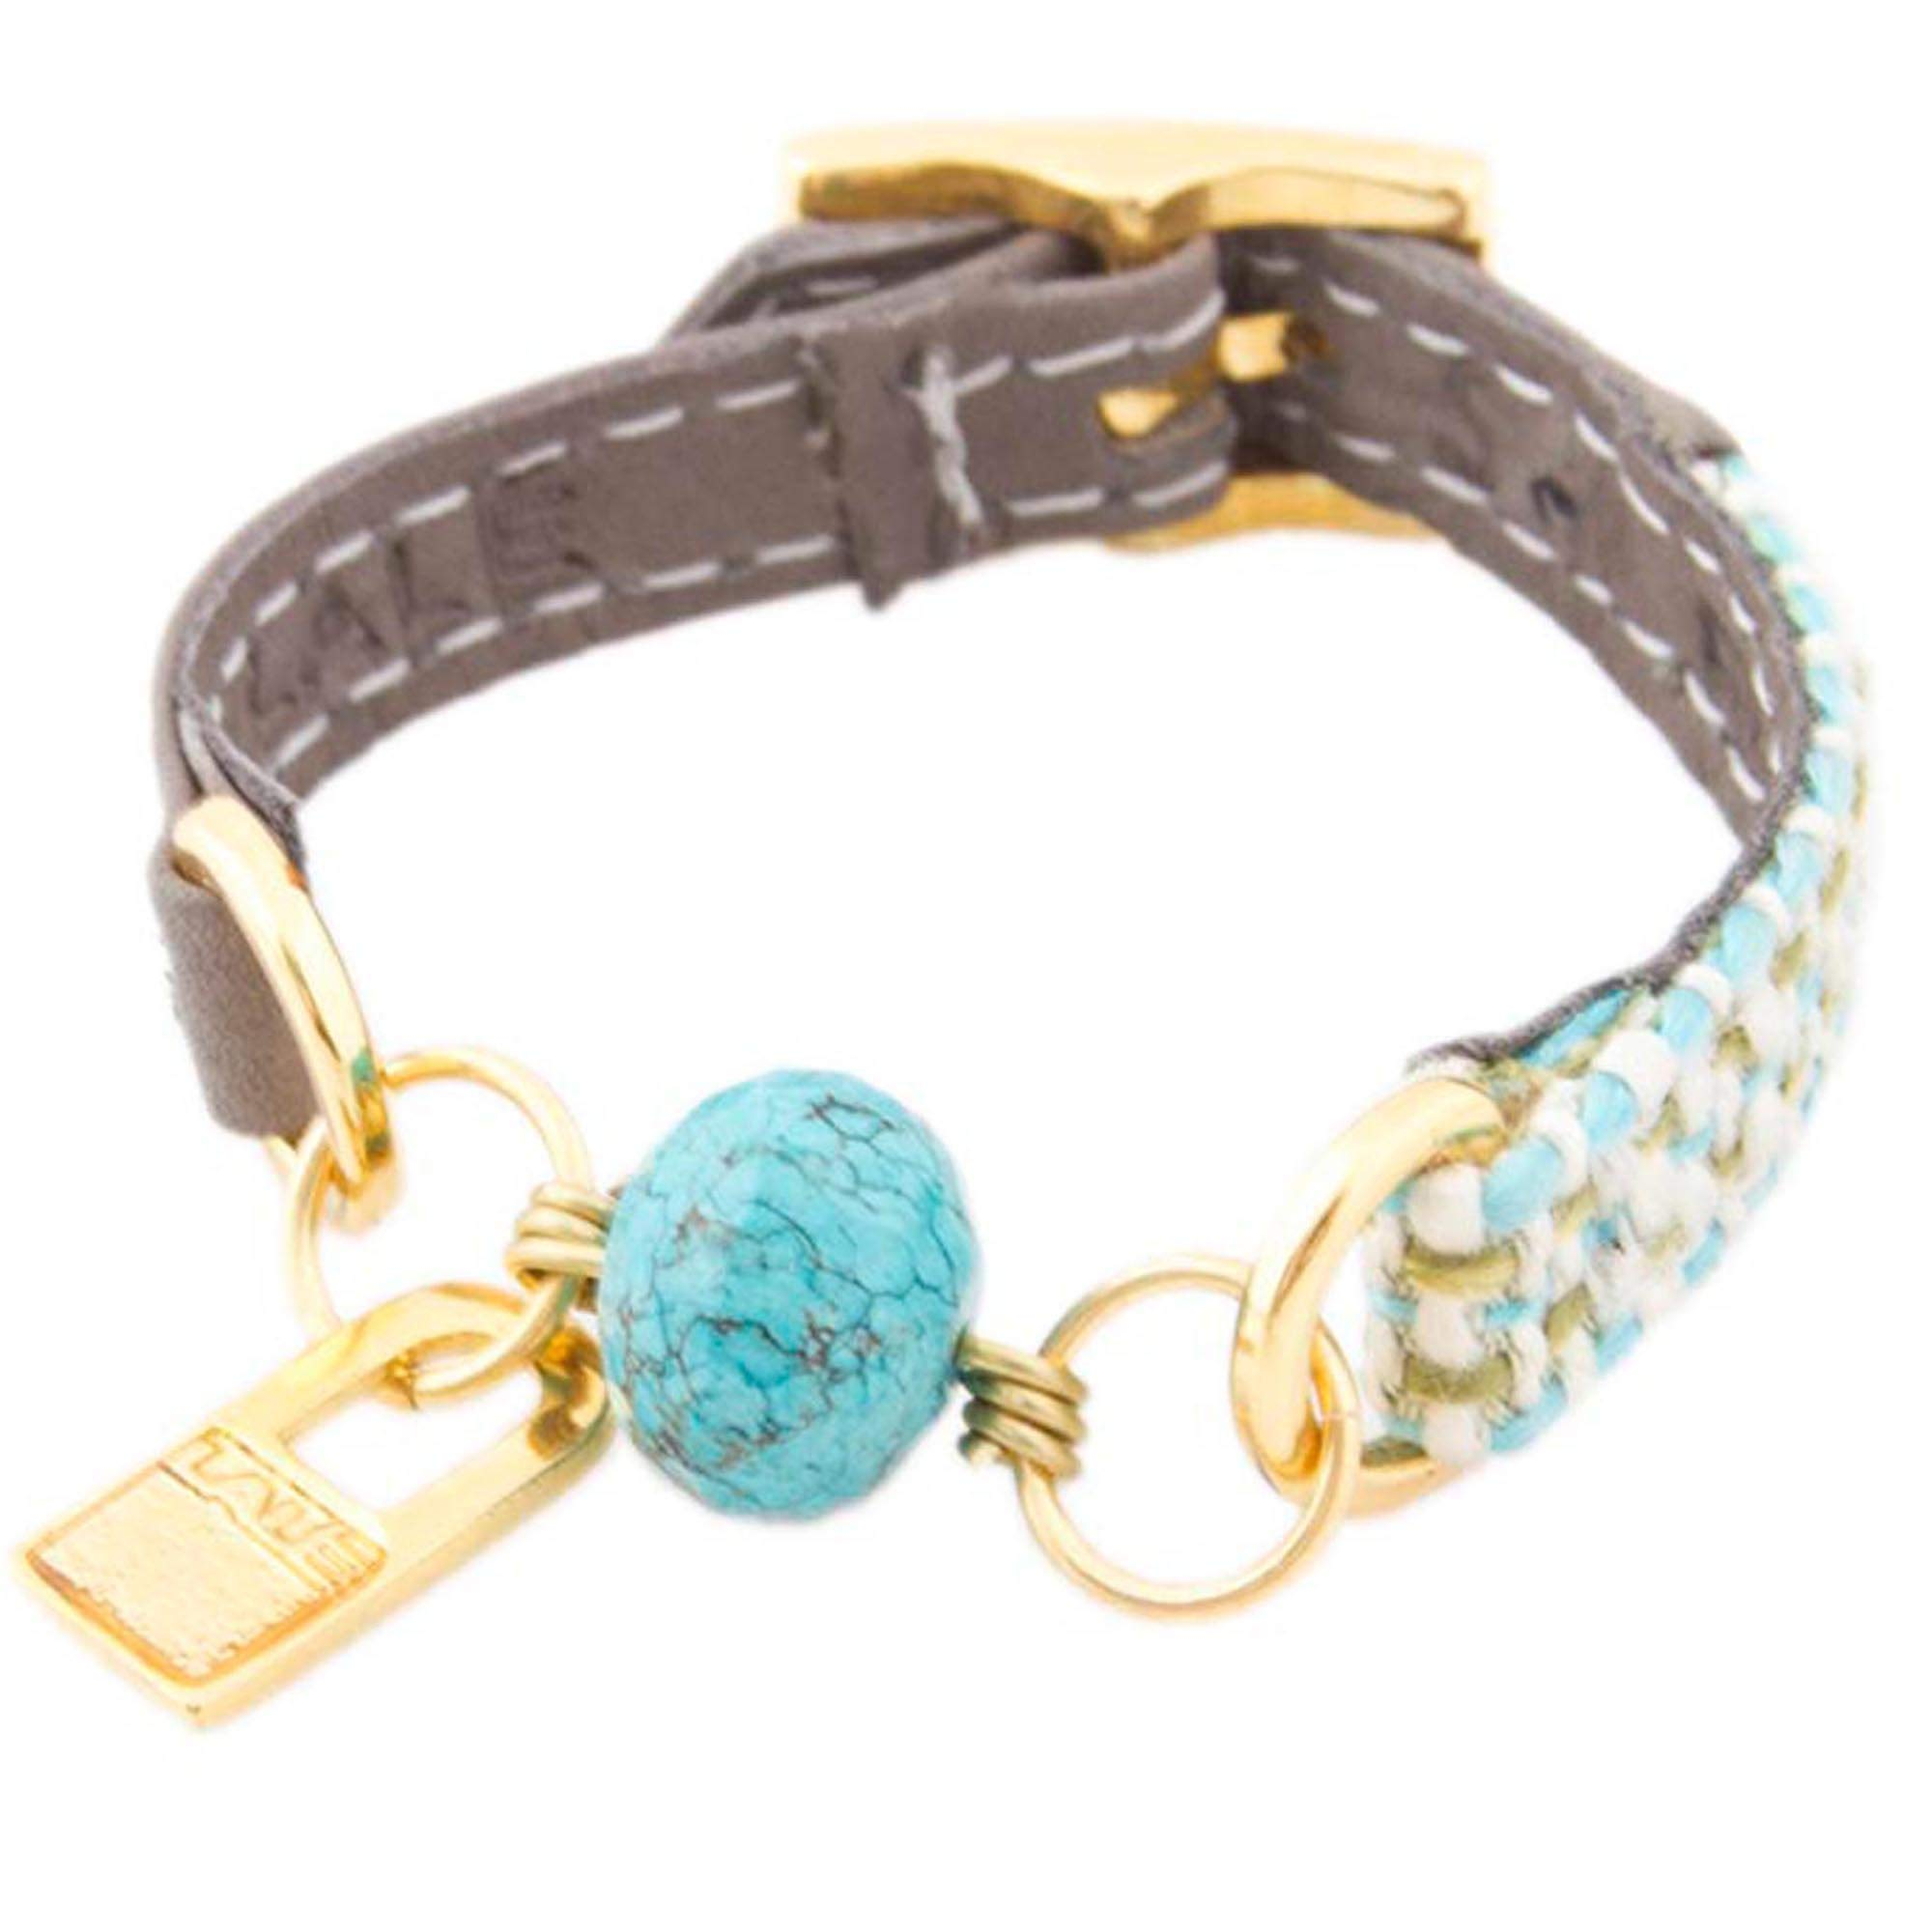 LALÉ Woman wrap Genuine Leather and semiprecious Stone Bracelet | Twists Around The Wrist | Ironwork Plated in Gold Buckle for Closure | Adjustable Size | Handmade Jewelry (Grey, 6.5)